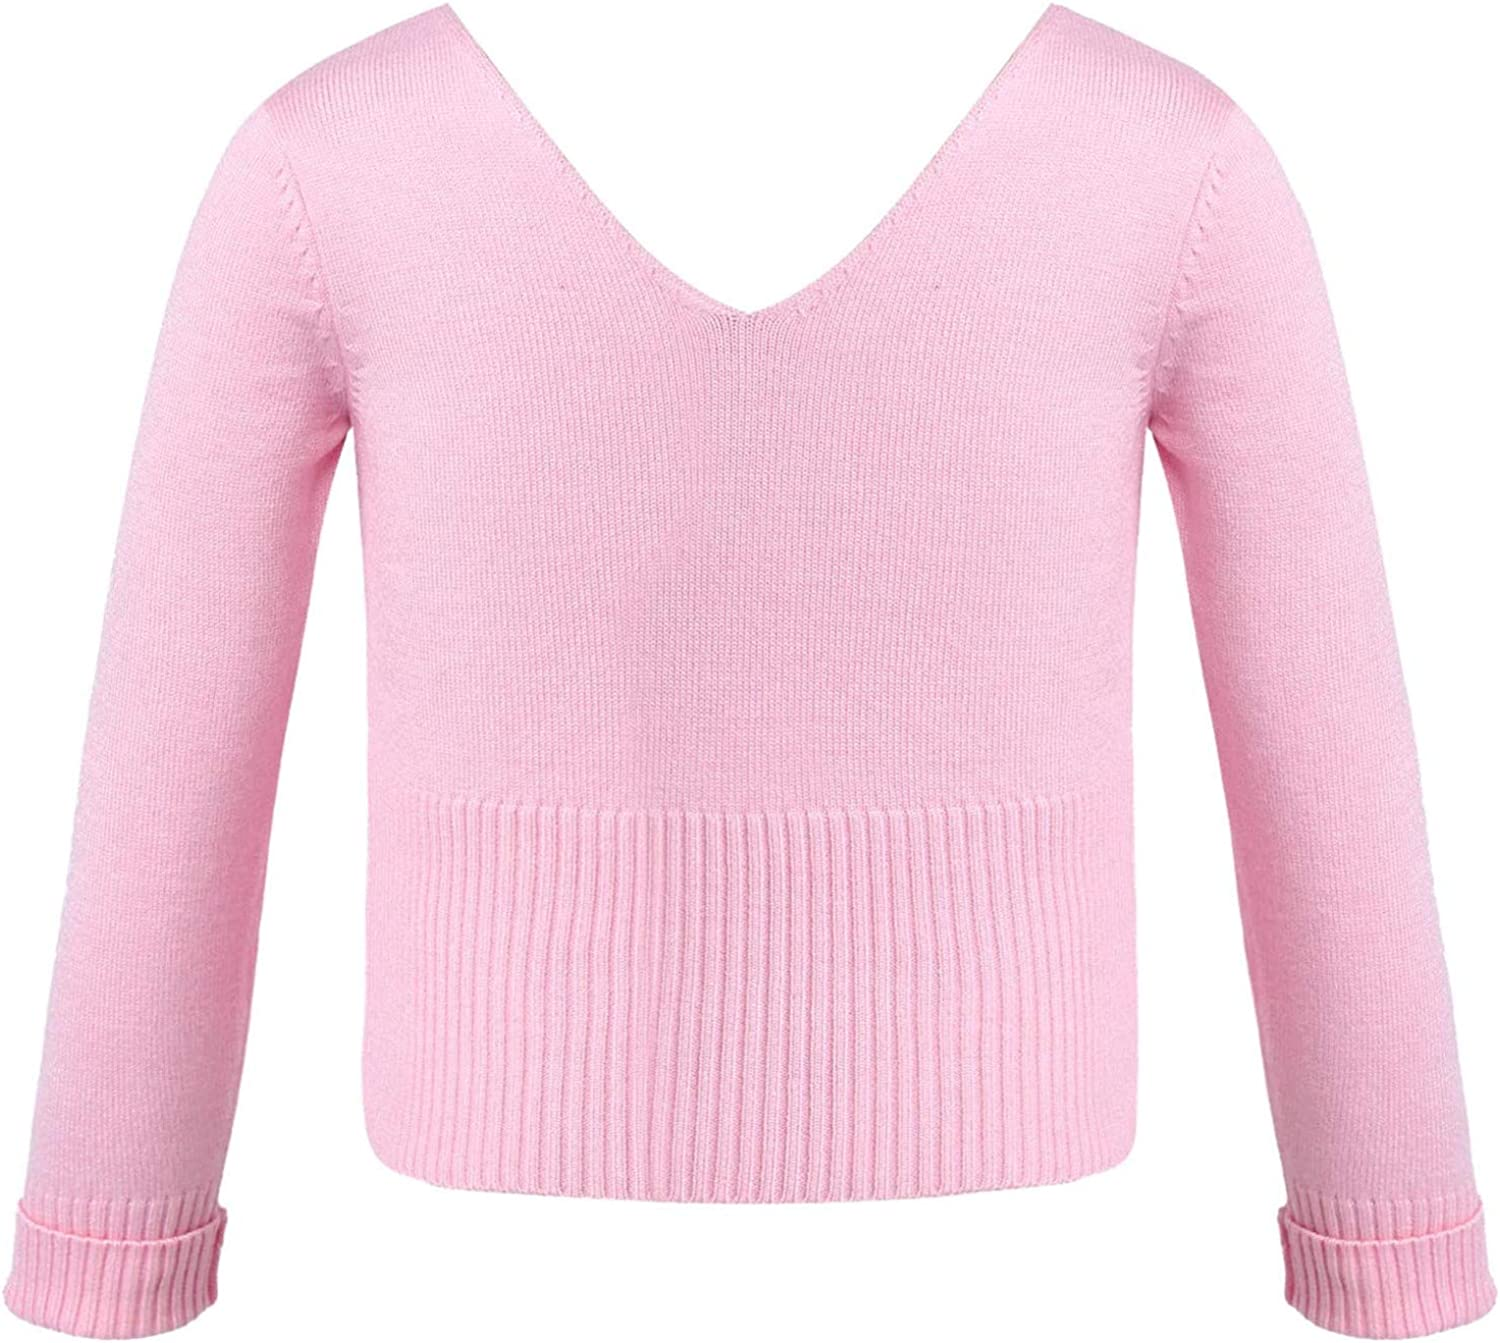 Doomiva Kids Girls Classic Ballet Wrap Top with Thumb Hole Knit Sweater Winter Warm Long Sleeves Dance Cardigan Pink V Neck 6